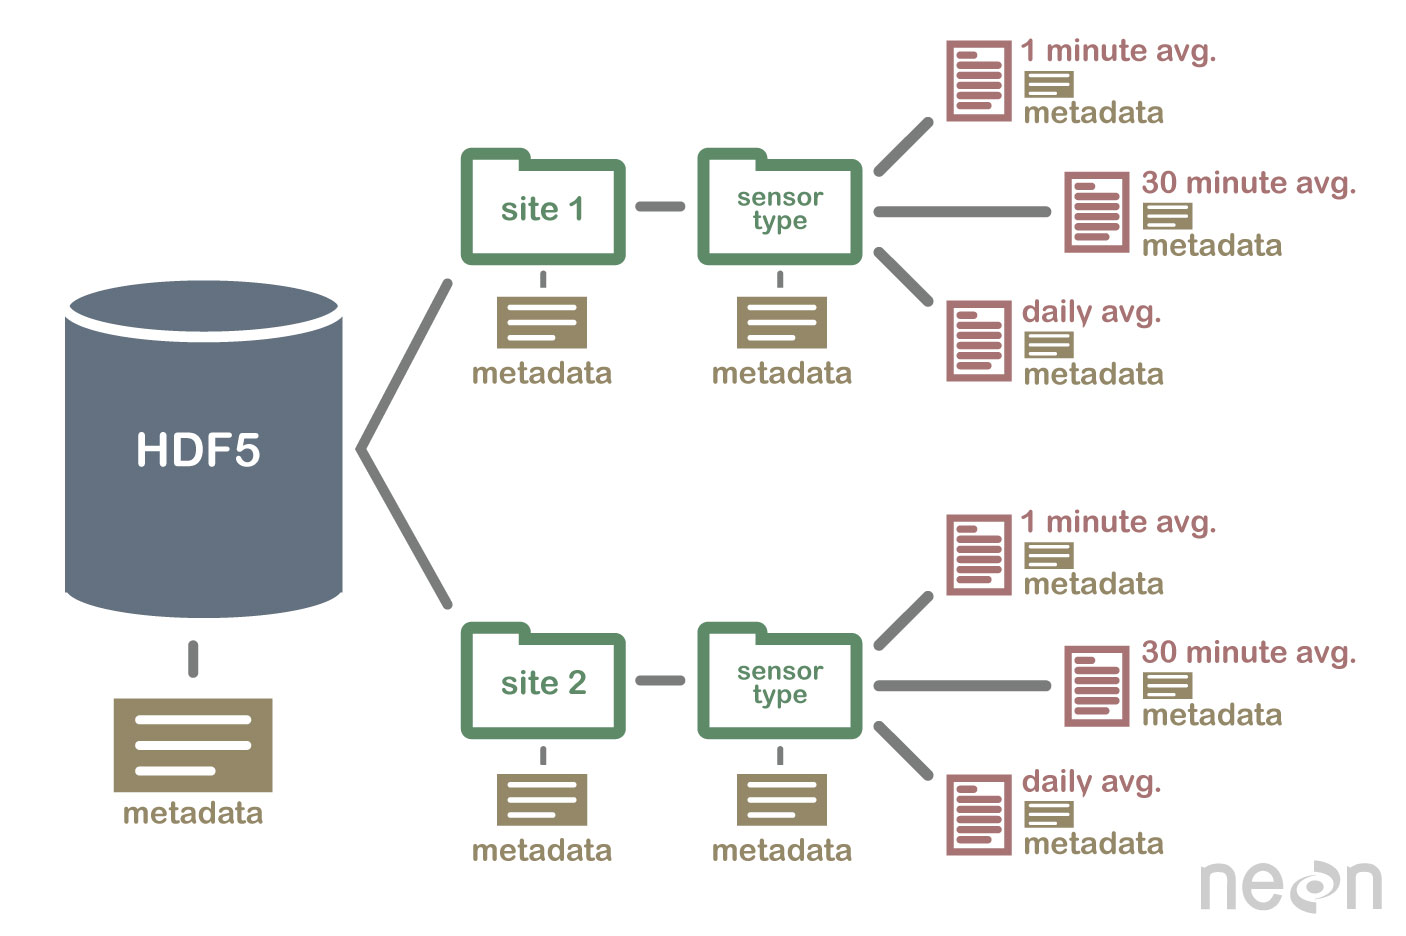 An example HDF5 file structure containing metadata for the file, groups, and datasets.